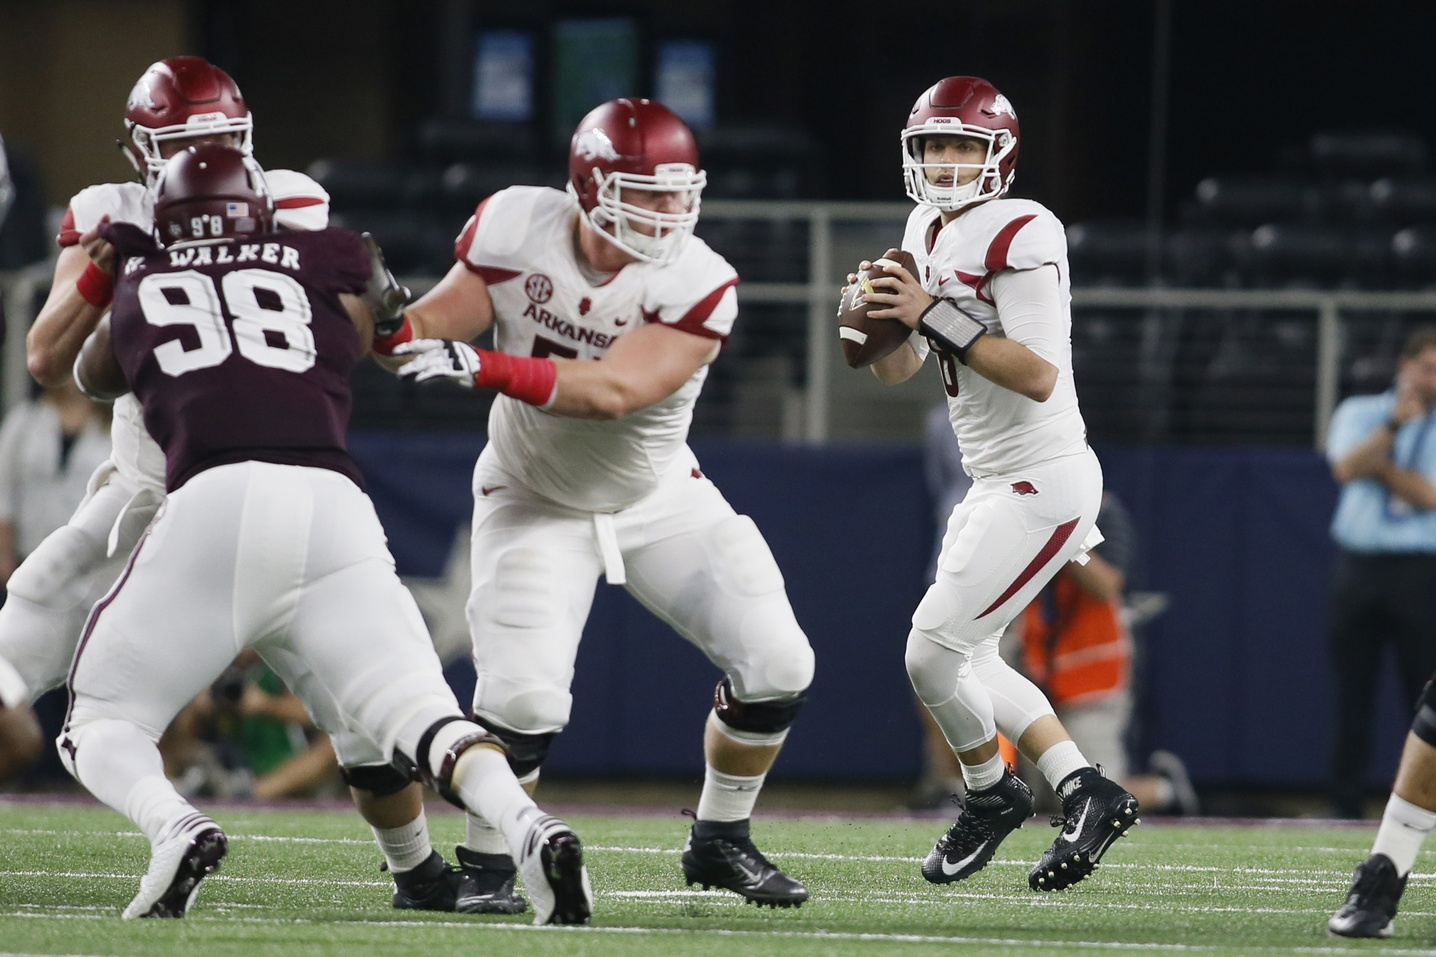 Sep 24, 2016; Dallas, TX, USA; Arkansas Razorbacks quarterback Austin Allen (8) stands in the pocket to pass in the first quarter against the Texas A&M Aggies at AT&T Stadium. Mandatory Credit: Tim Heitman-USA TODAY Sports